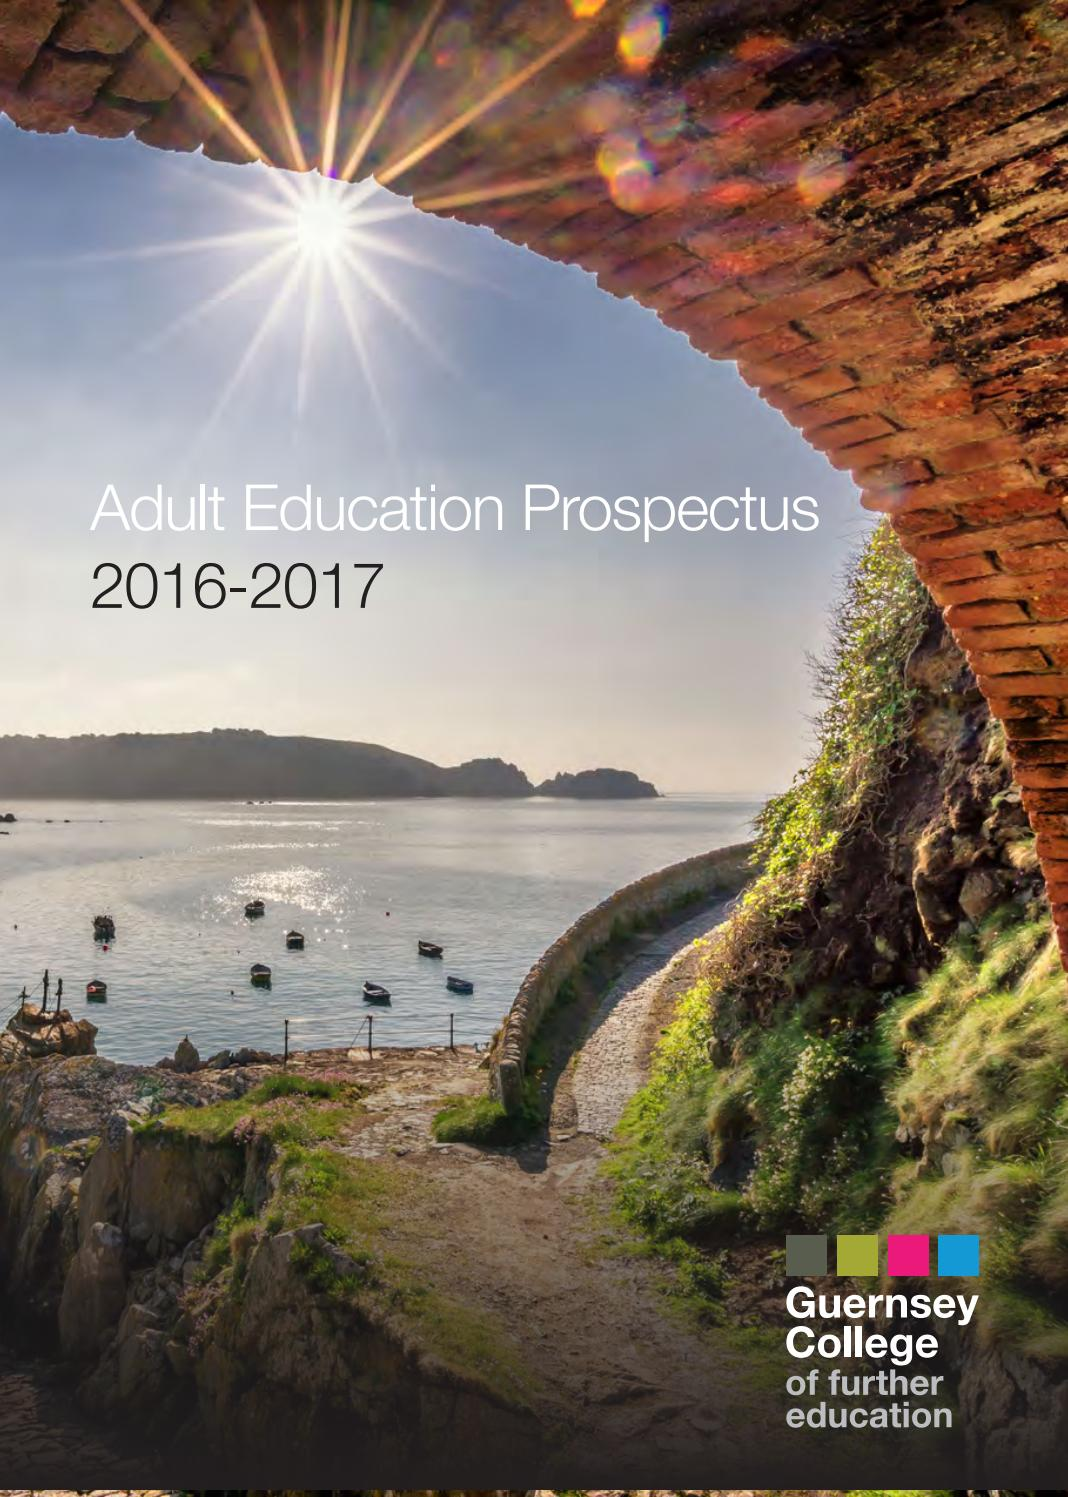 Co colour care guernsey - Guernsey College Of Further Education Adult Education Prospectus By Guernsey College Of Further Education Issuu